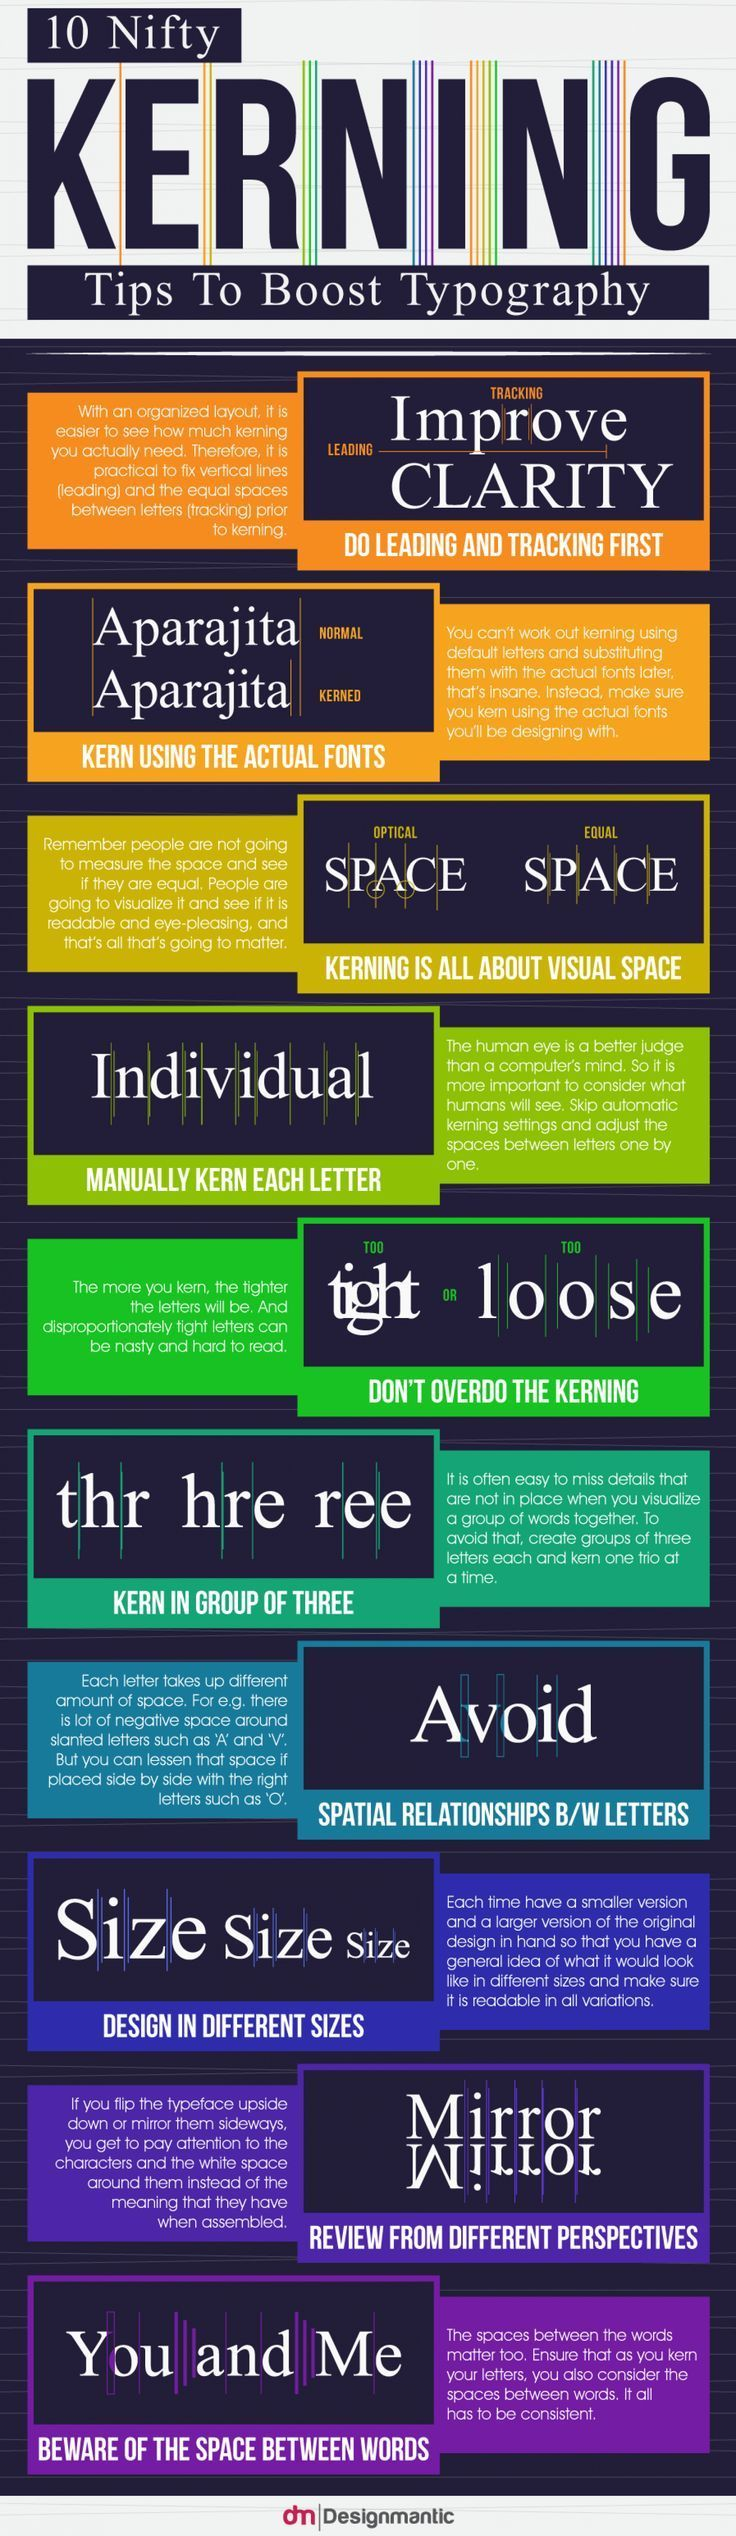 10 Nifty Kerning Tips To Boost Typography Infographic